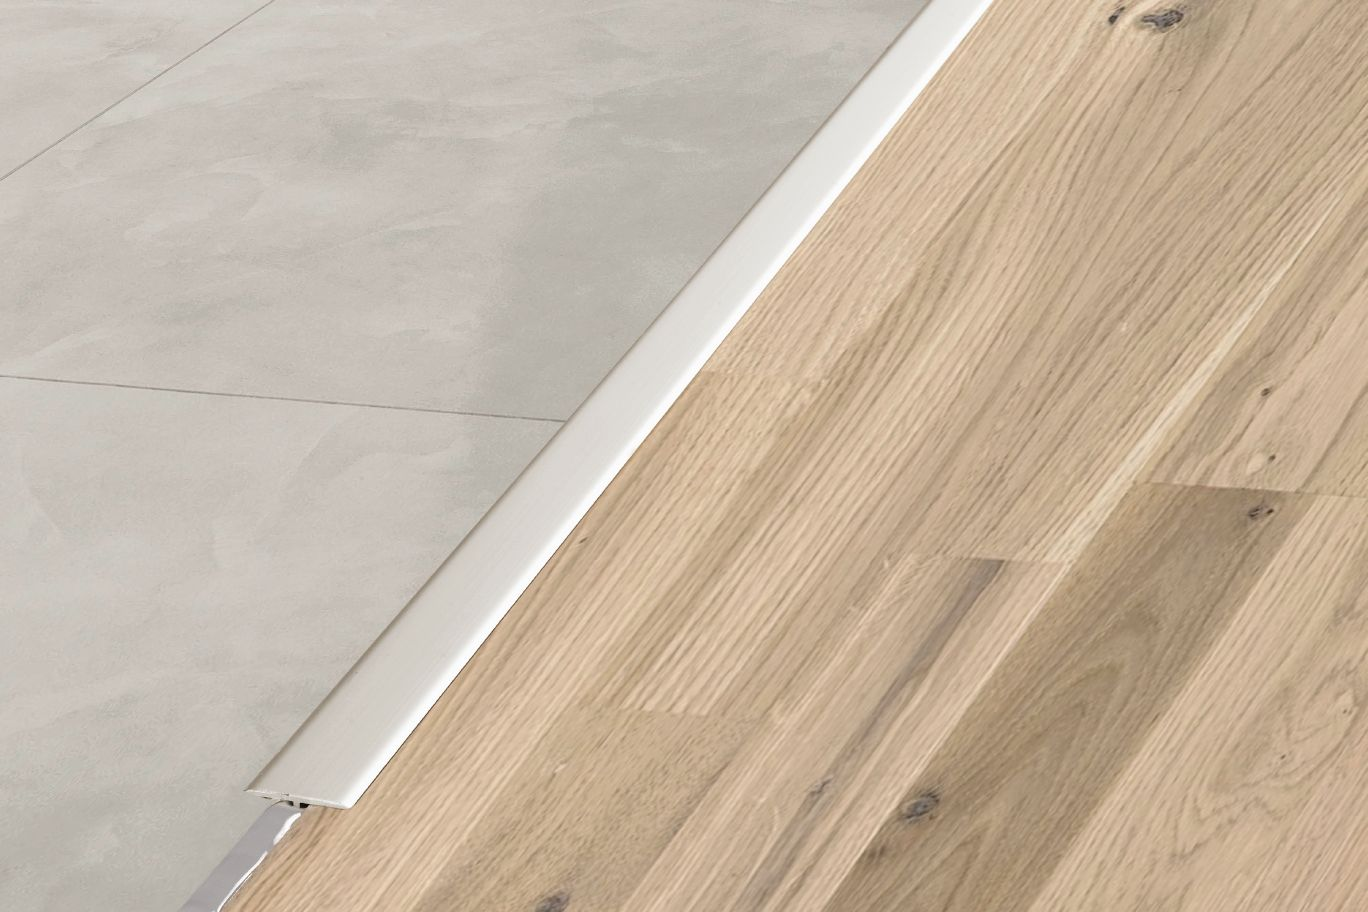 Schluter reno t same height transitions for floors for Floor profile